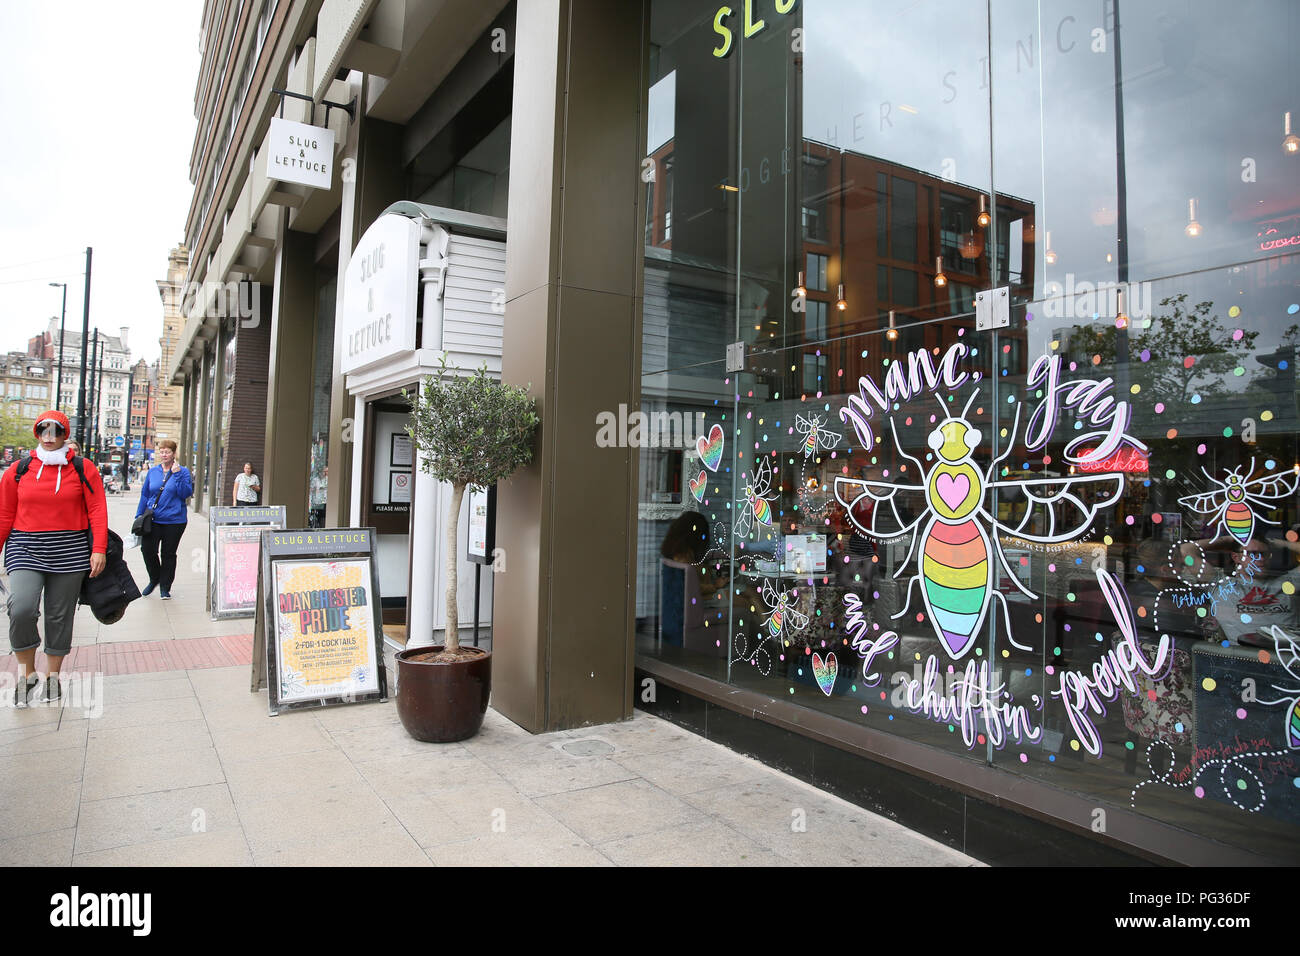 Manchester, UK. 23rd August, 2018. A window decorated with a Bee and the words 'Manc gay and chuffin proud' as Preparations take place in the city for the Gay Pride Big Weekend, Manchester. 23rd August, 2018 (C)Barbara Cook/Alamy Live News - Stock Image